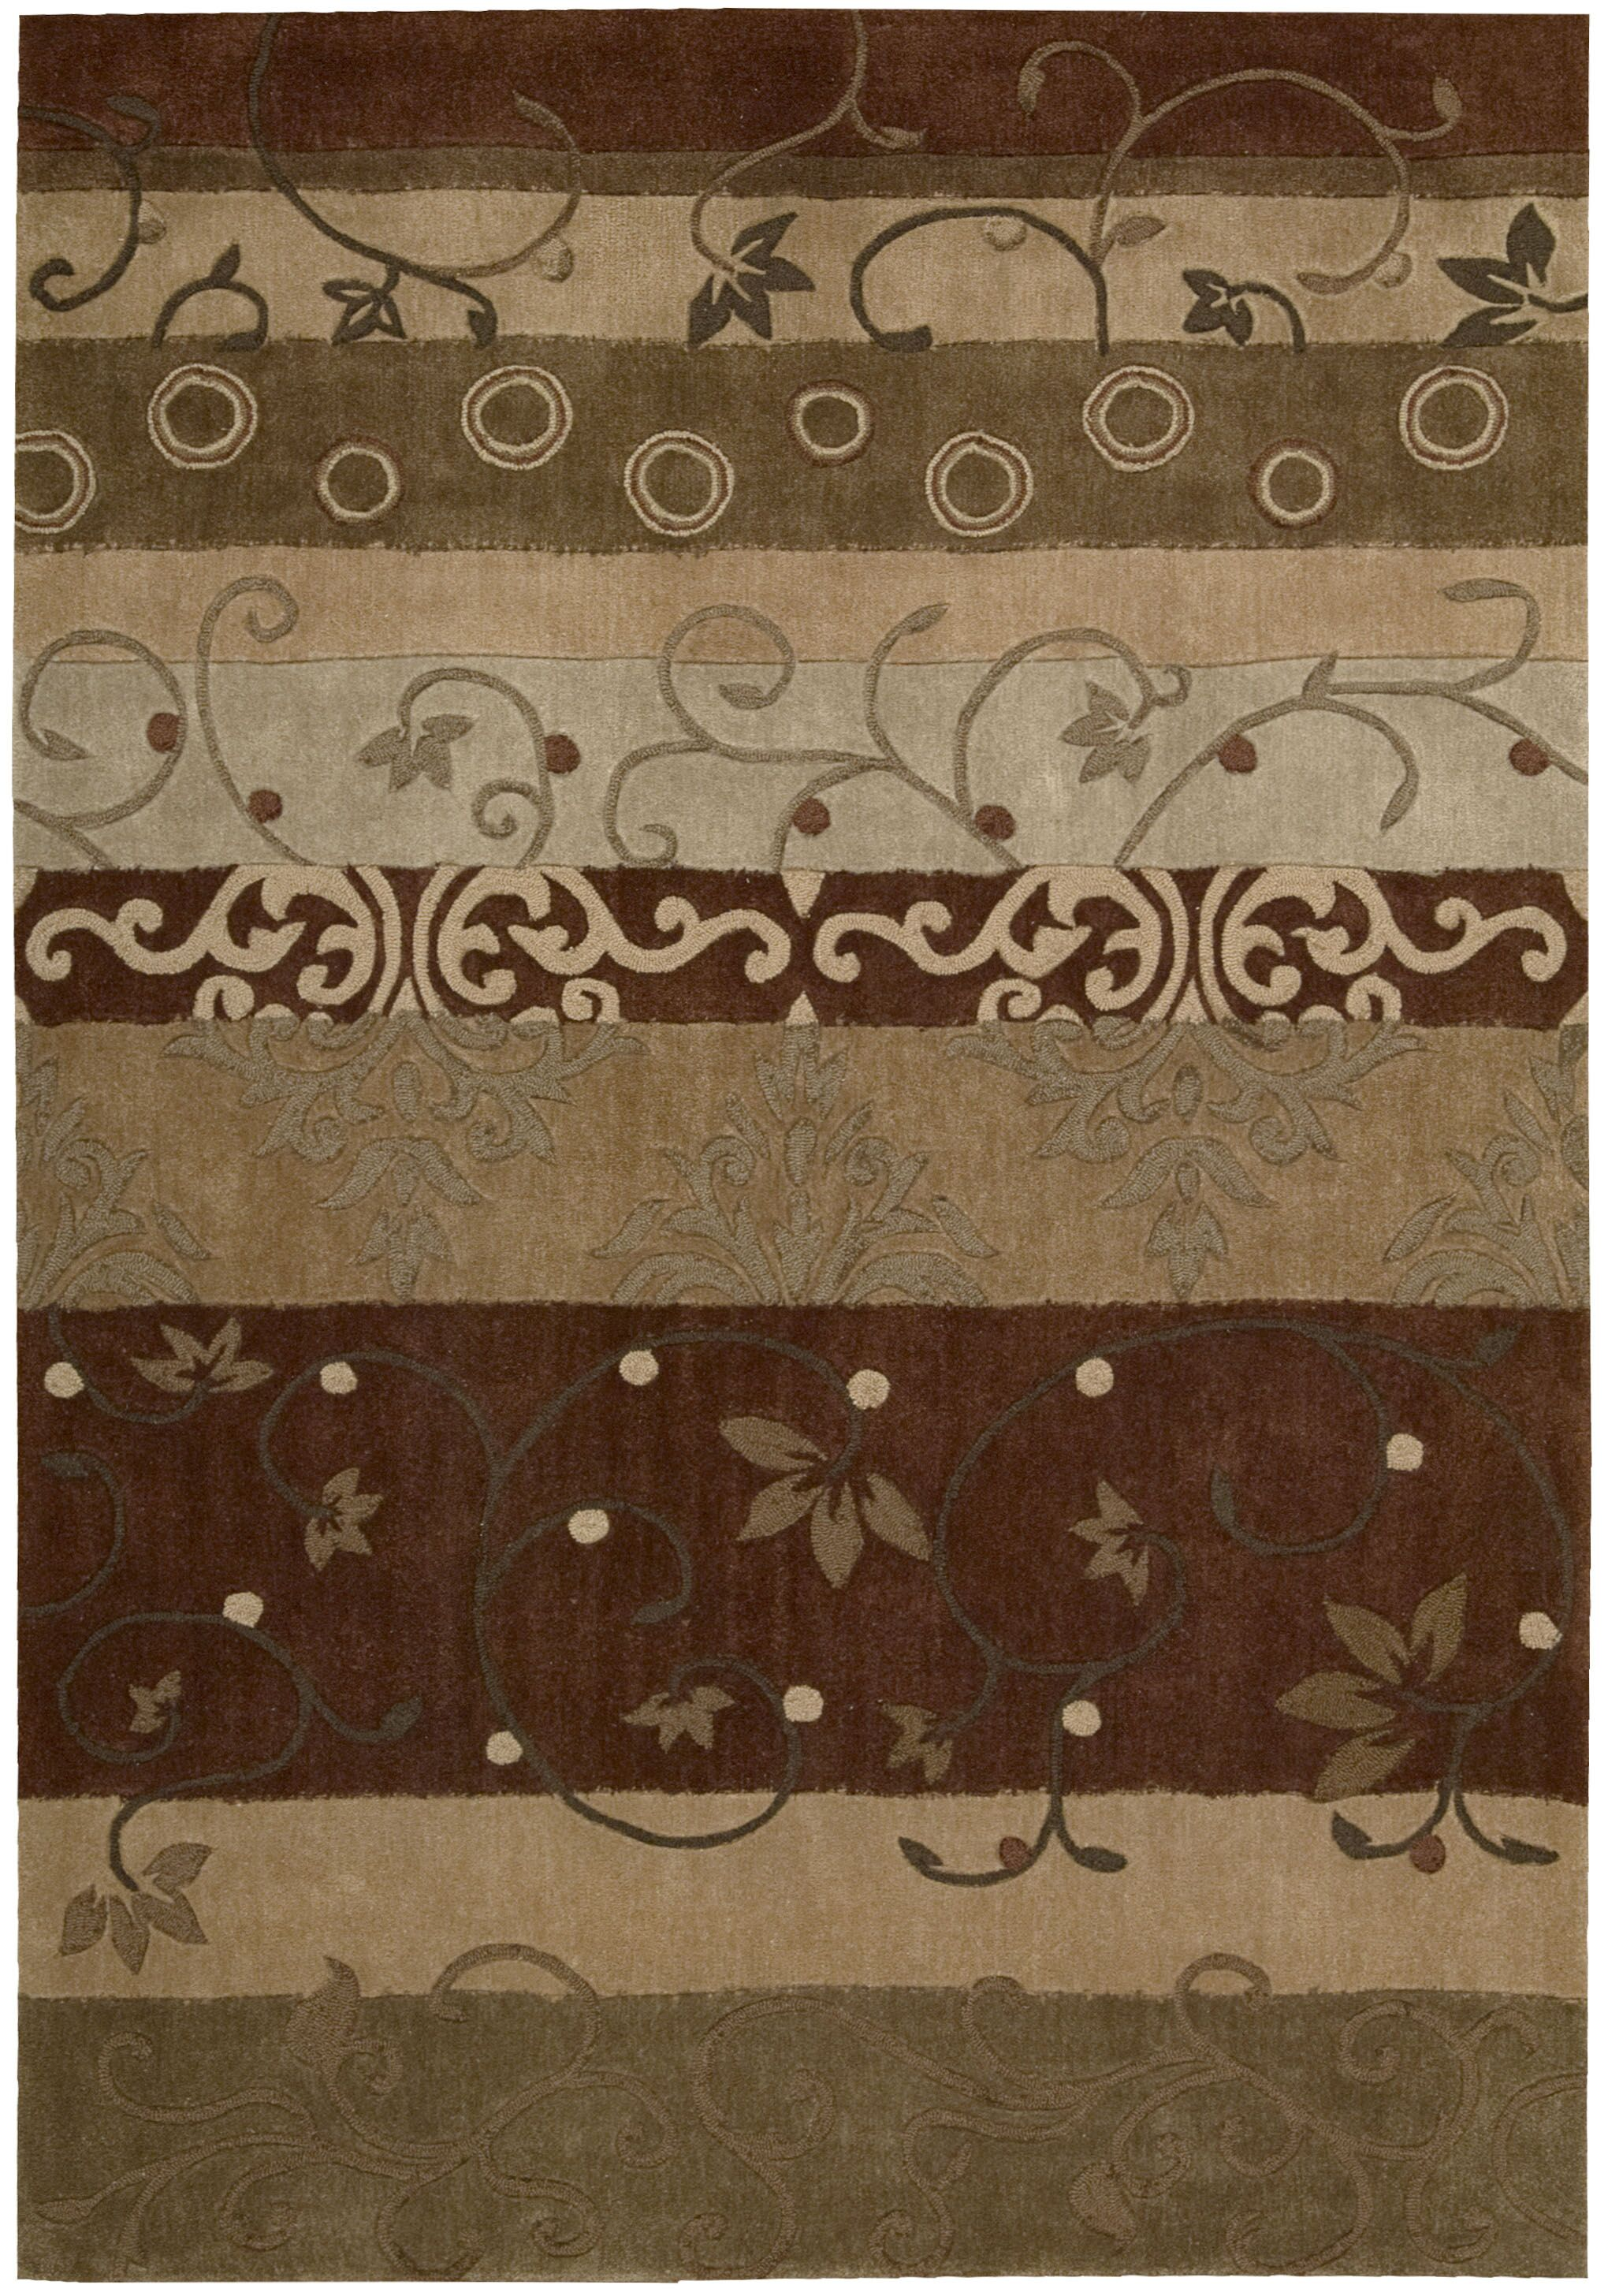 Brittni Hand-Tufted Beige/Brown Area Rug Rug Size: Rectangle 5' x 7'6